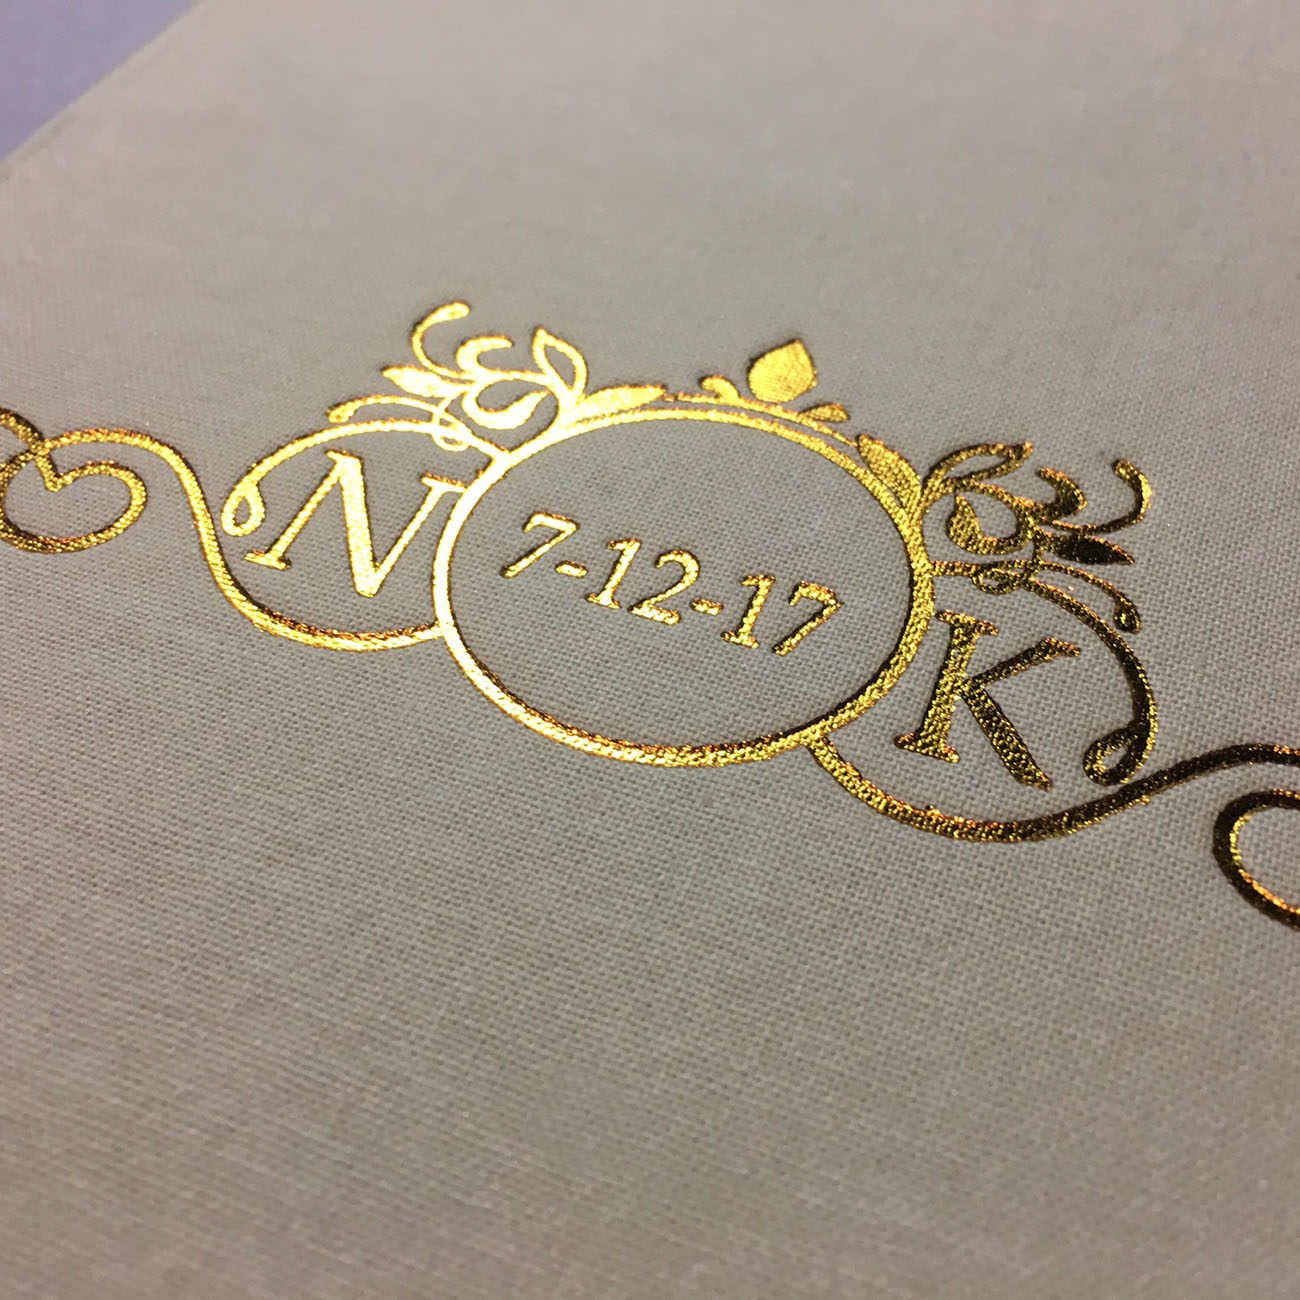 Products Archive  Luxury Wedding Invitations Handmade Invitations  Wedding Favors